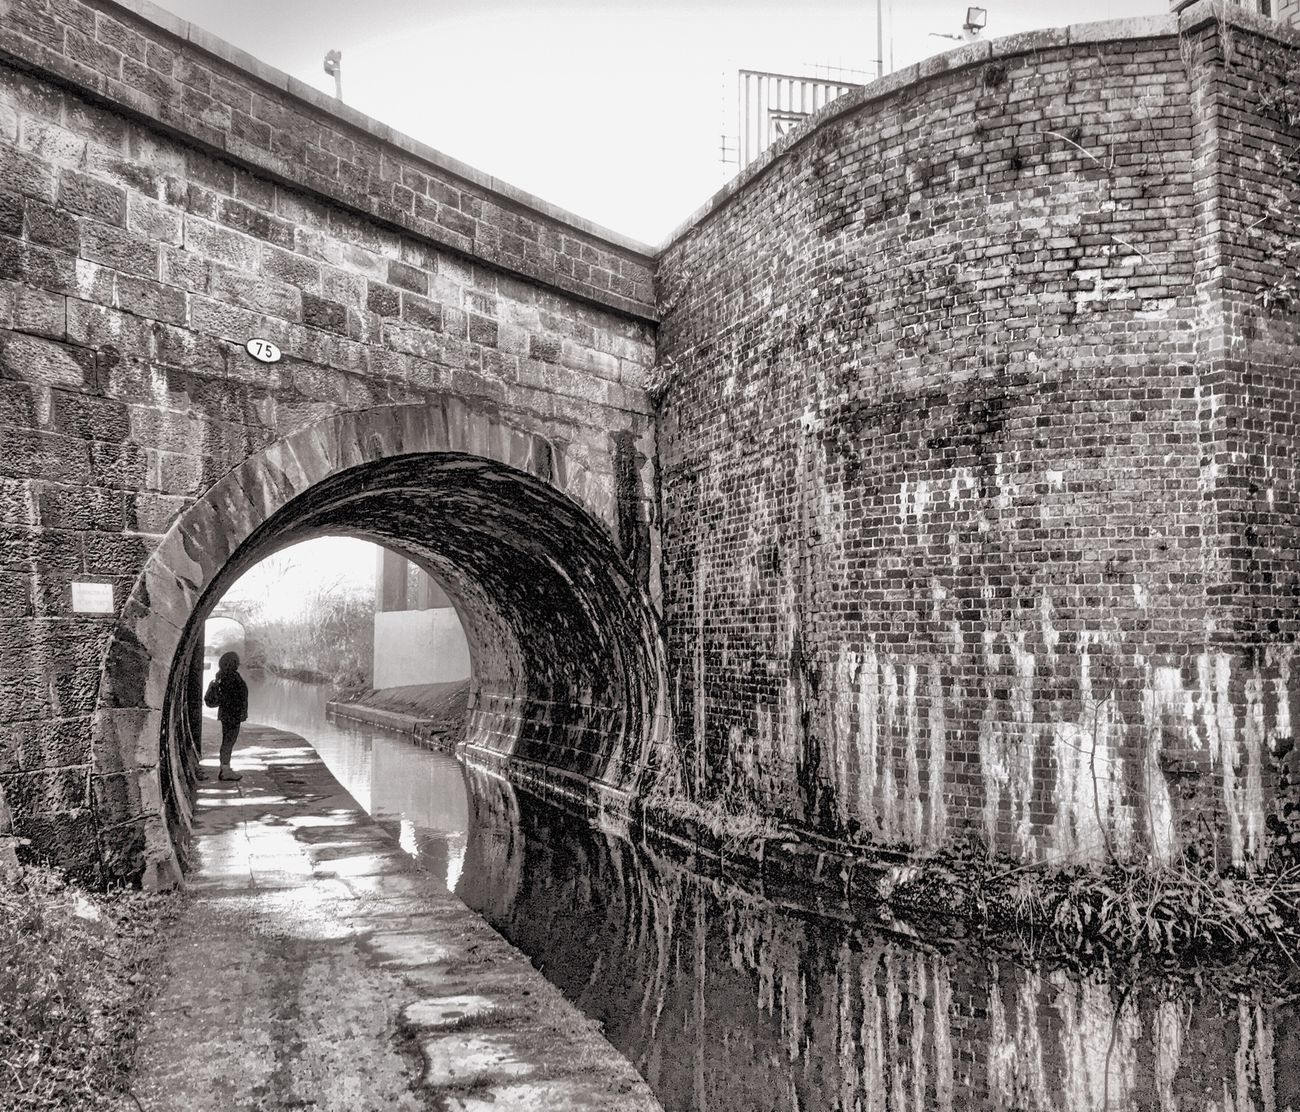 Blackandwhite January2016 Rainy Walks Derelict Building Congleton Macclesfieldcanal Canal Waiting Industrial Industrialbeauty Cheshire Macclesfield Canal Black And White Showcase: January Landscape Canals And Waterways Outdoors